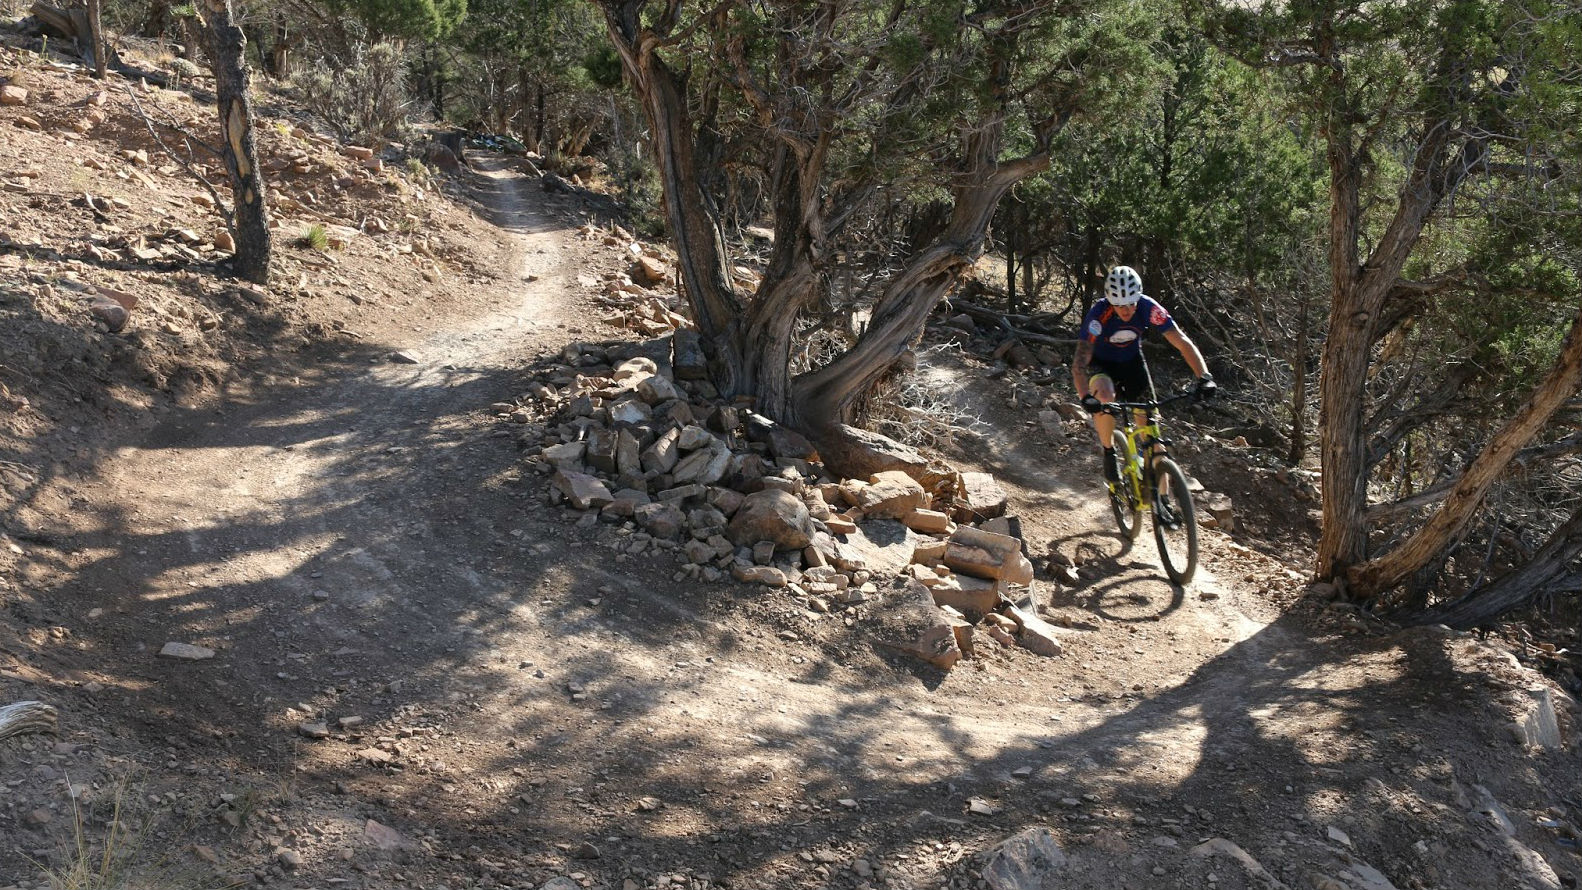 New Mountain Biking Trails Open Up